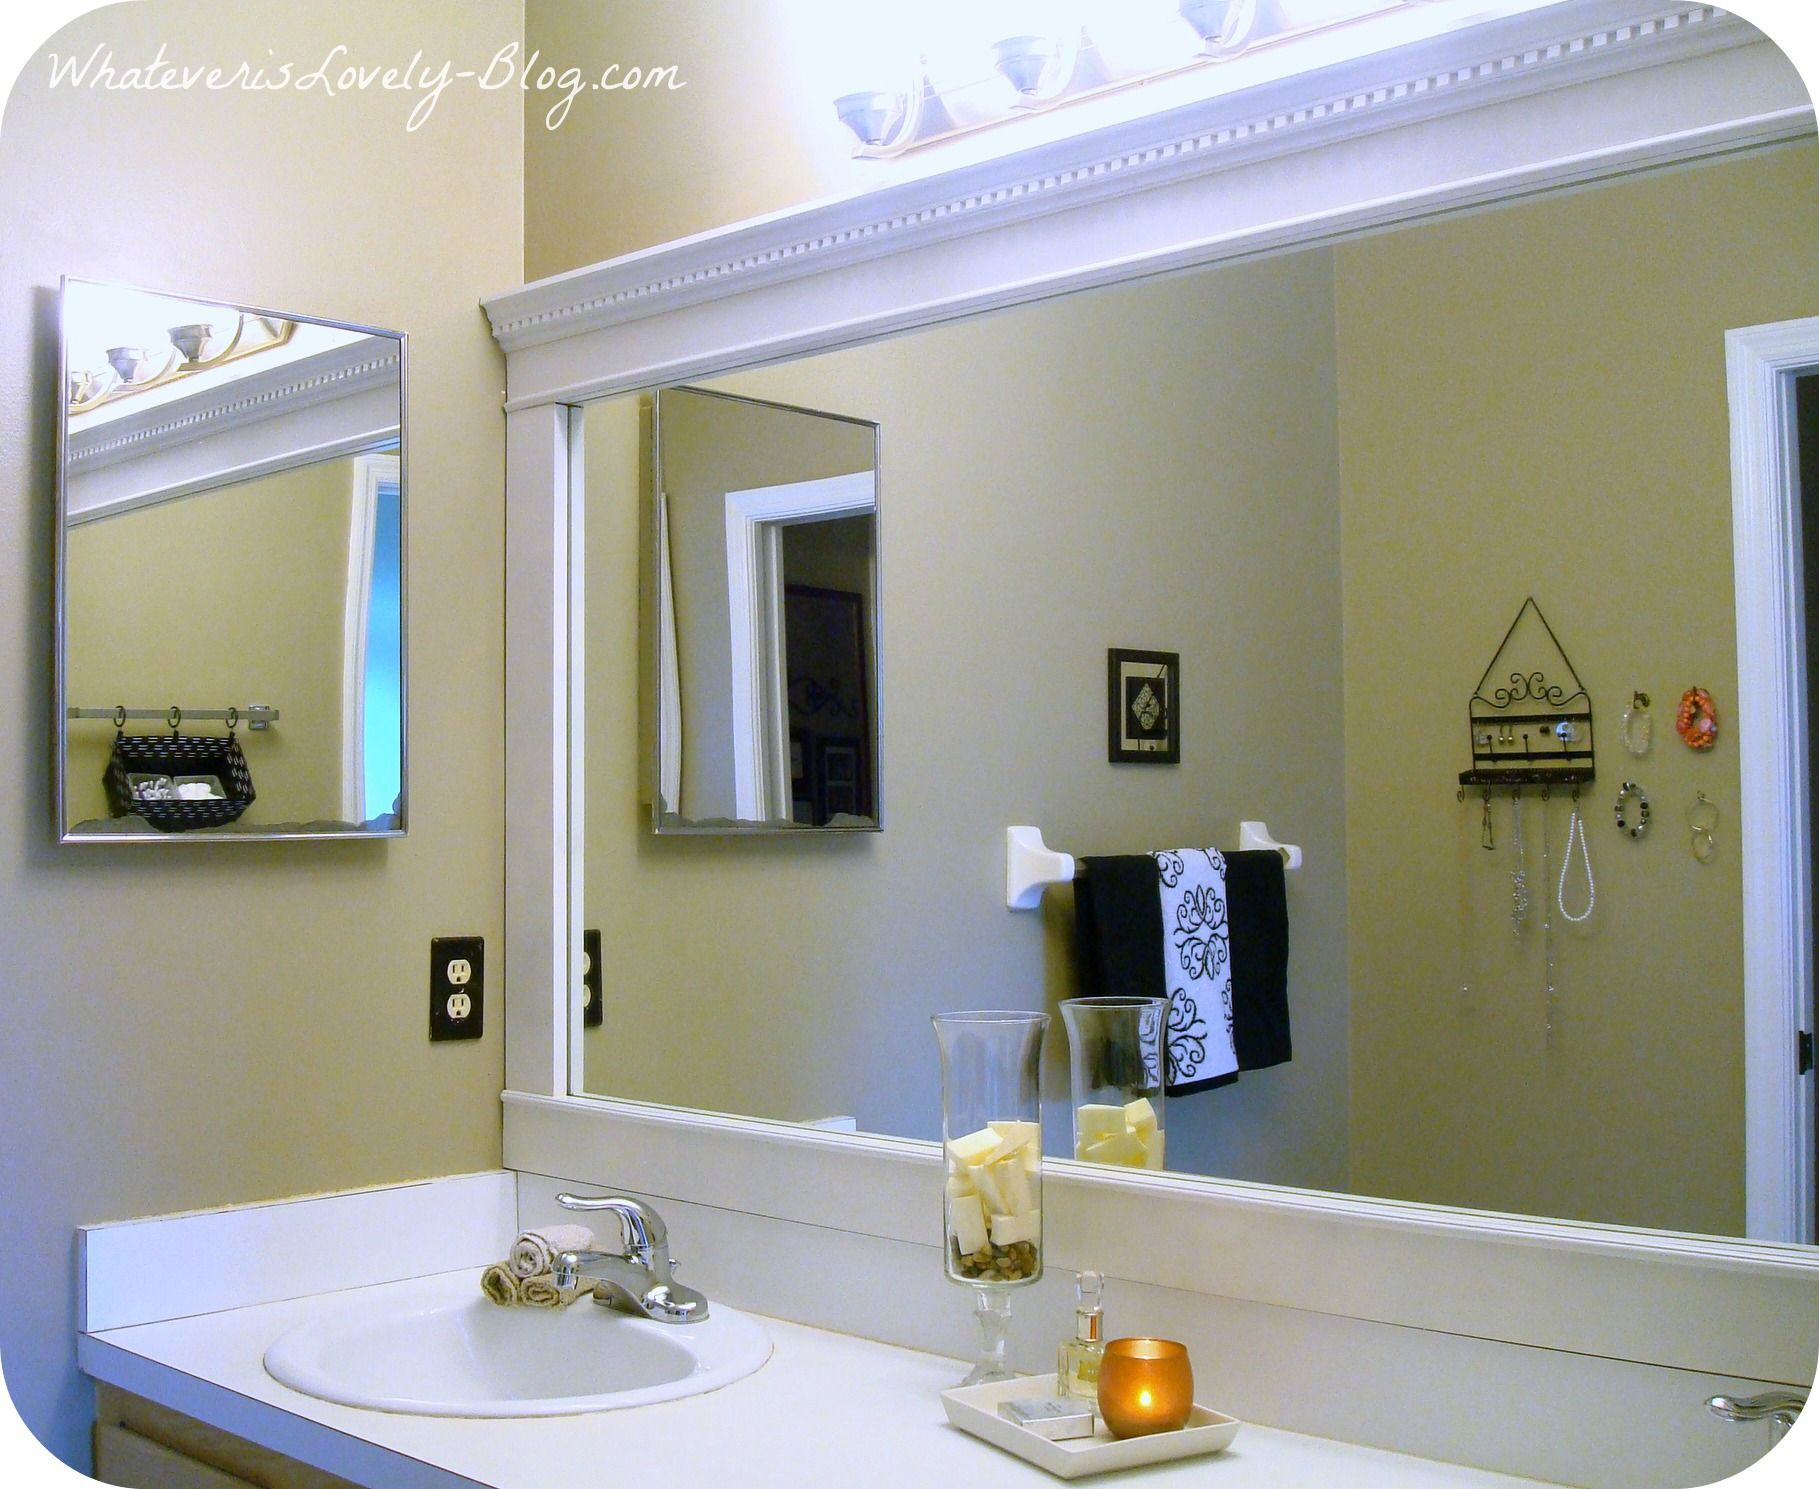 Framed mirror bathroom - A Reason Why You Shouldn T Demolish Your Old Barn Just Yet Framed Bathroom Mirrorsmaster